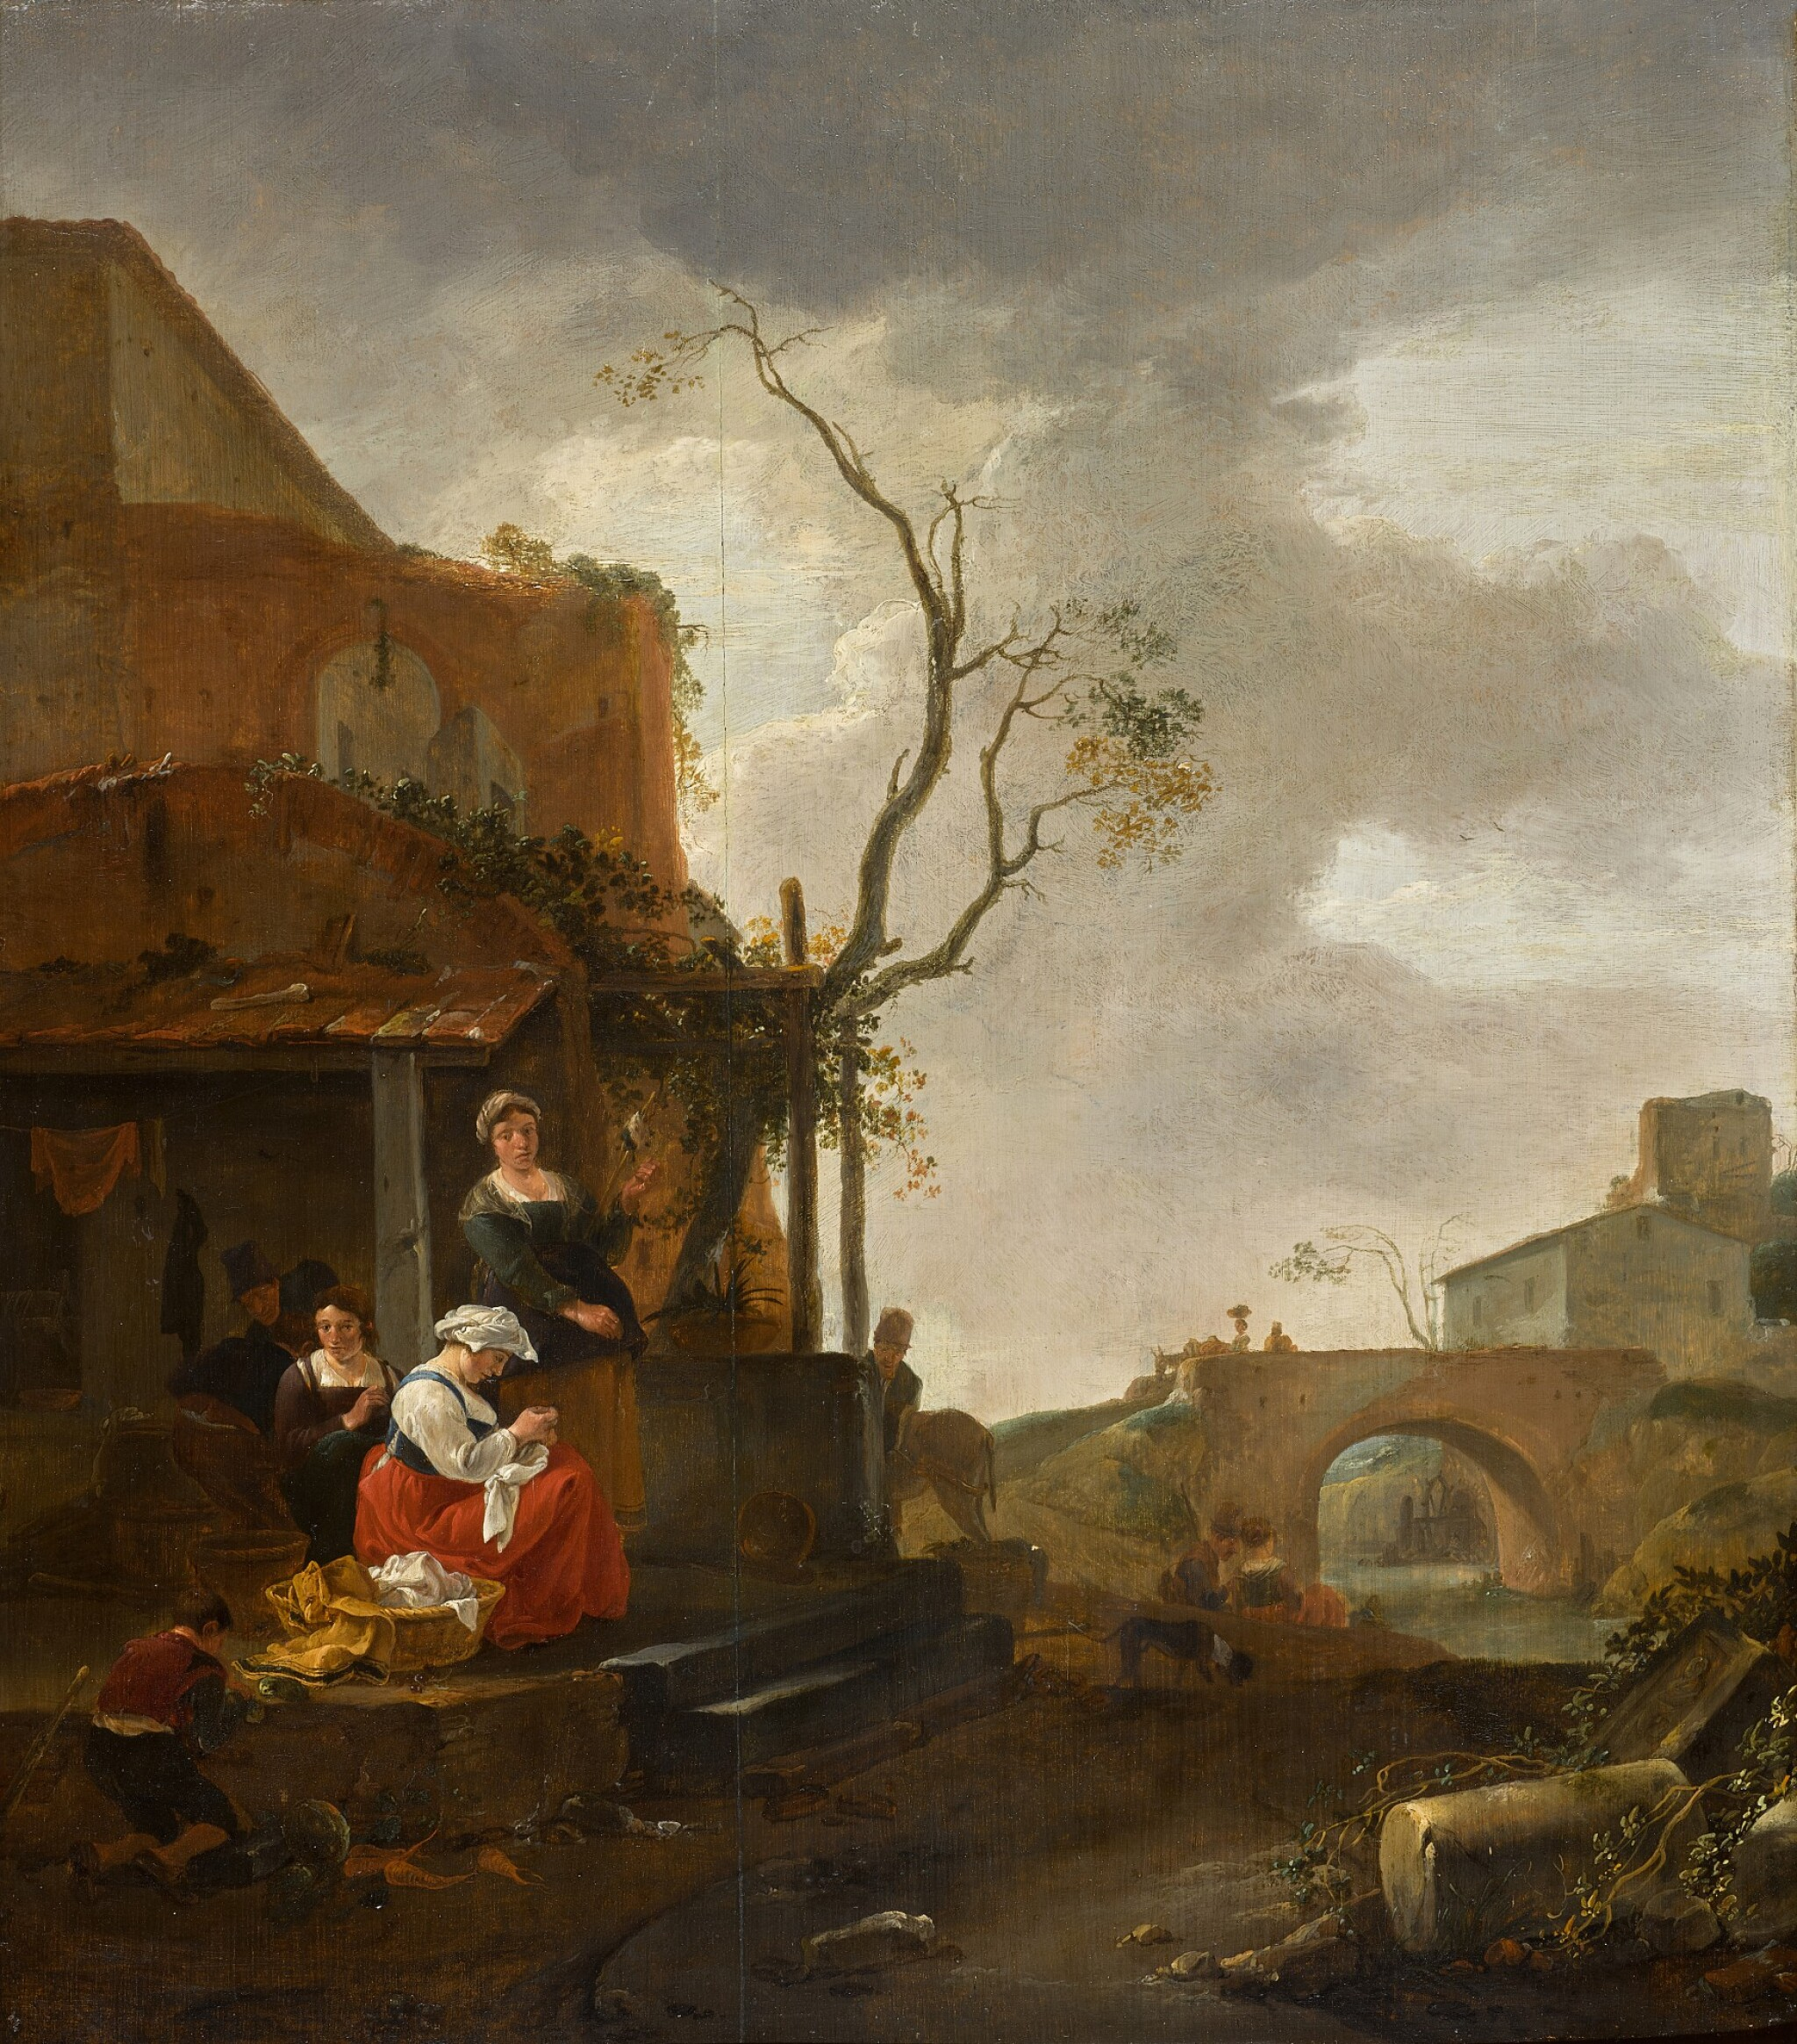 View 1 of Lot 149. Figures outside a tavern with a woman sewing, travellers on a bridge beyond.